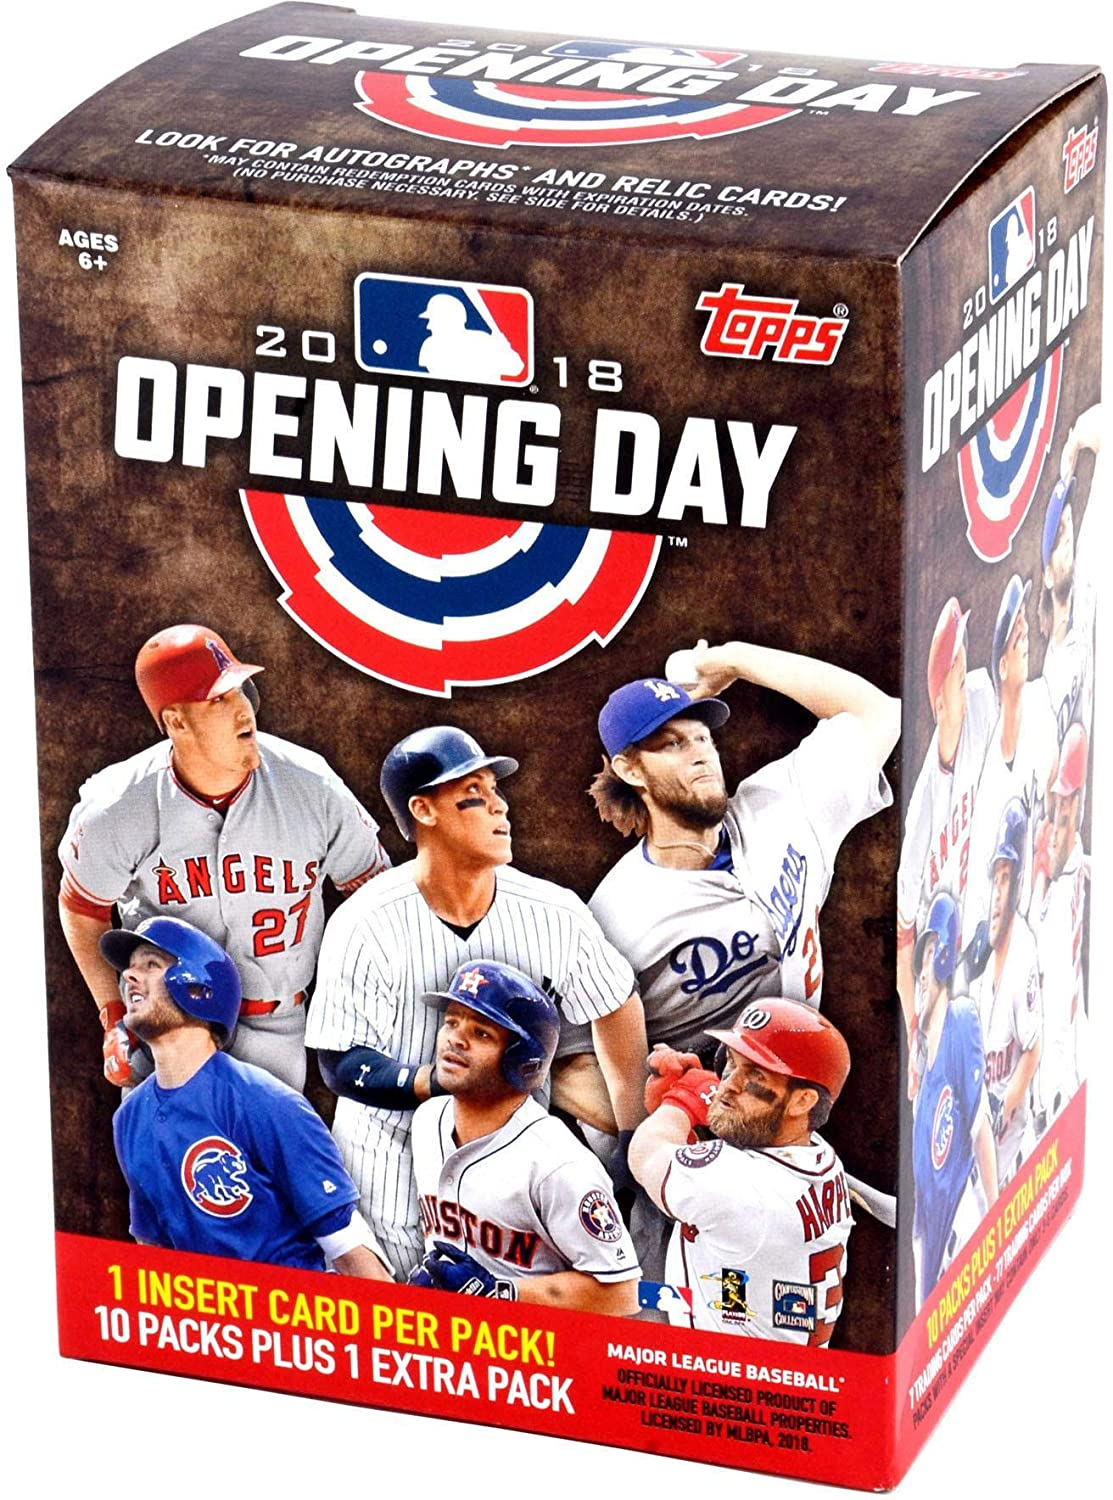 2018 Topps Opening Day Baseball Factory Sealed 11 Pack Blaster Box - Baseball Wax Packs Fanatics Authentic